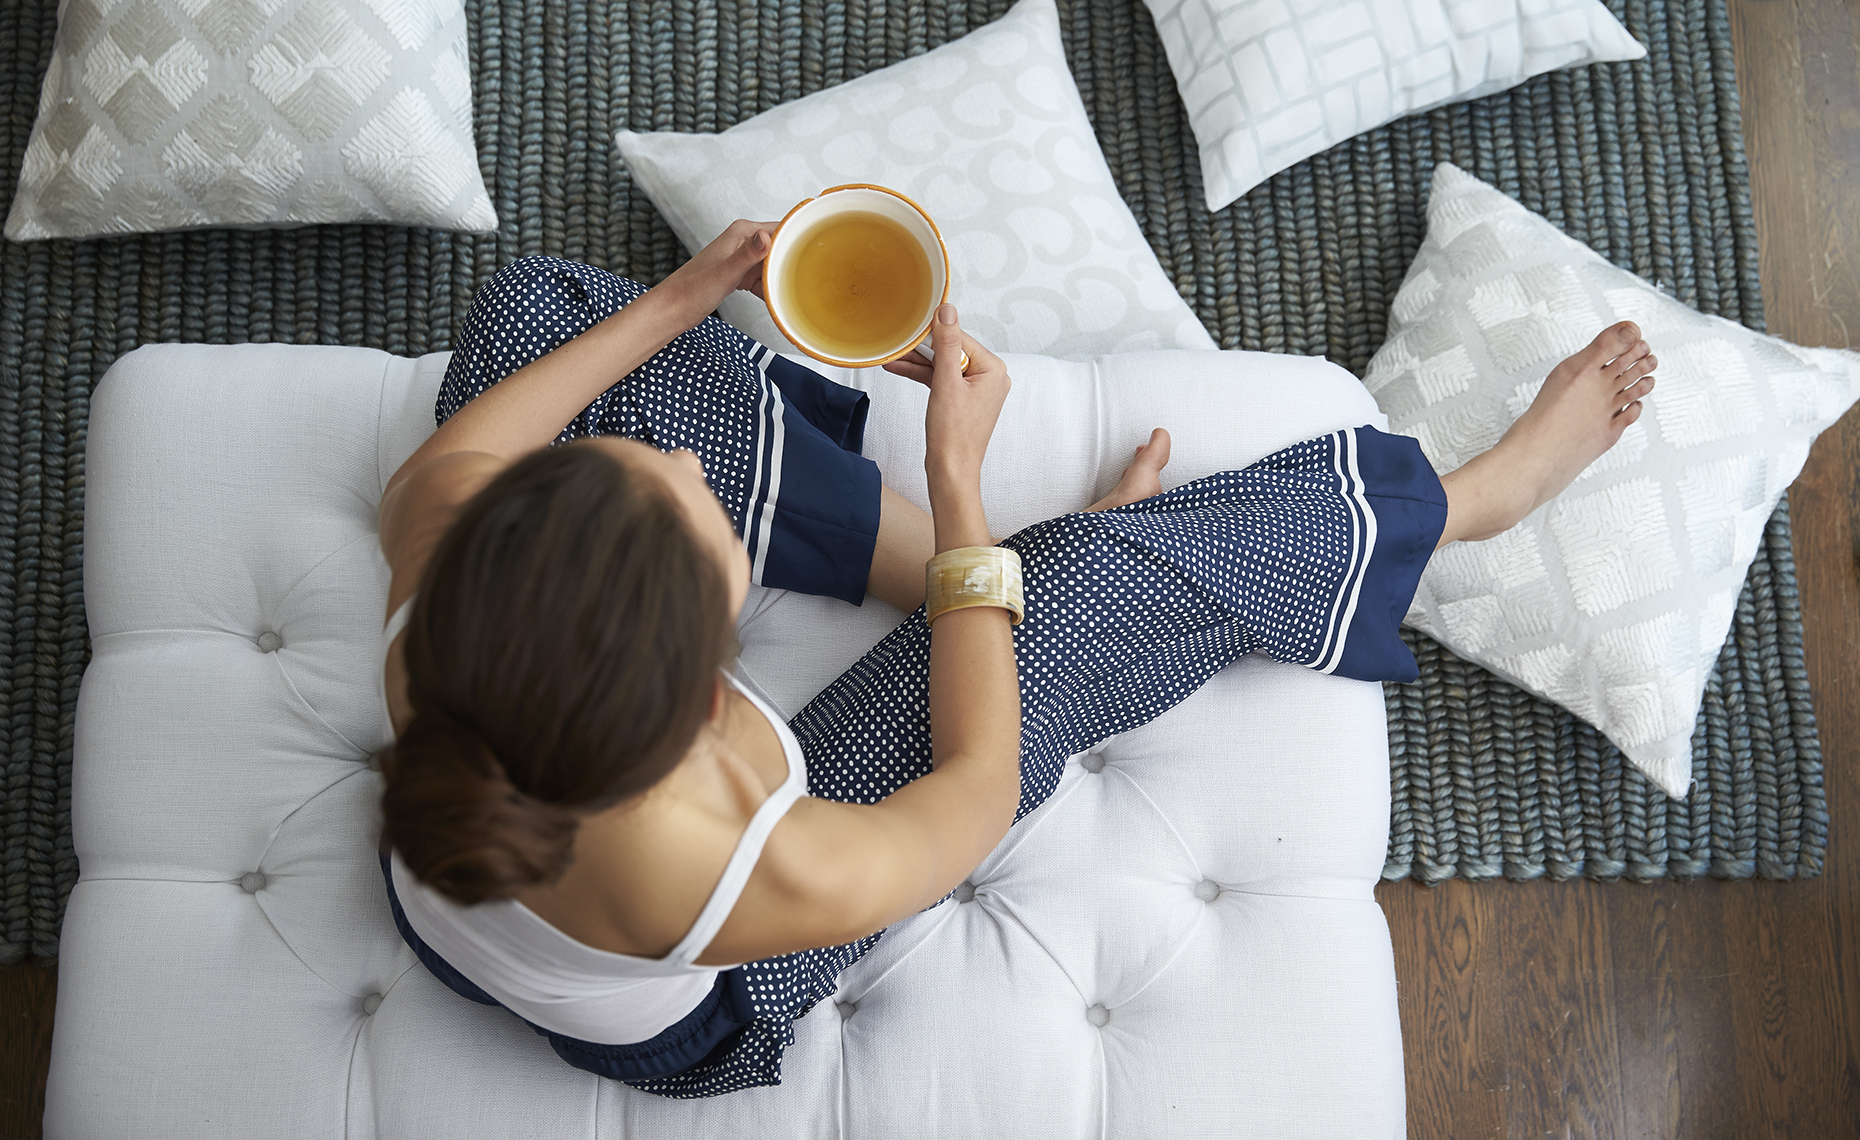 Lifestyle: Tea in Bed